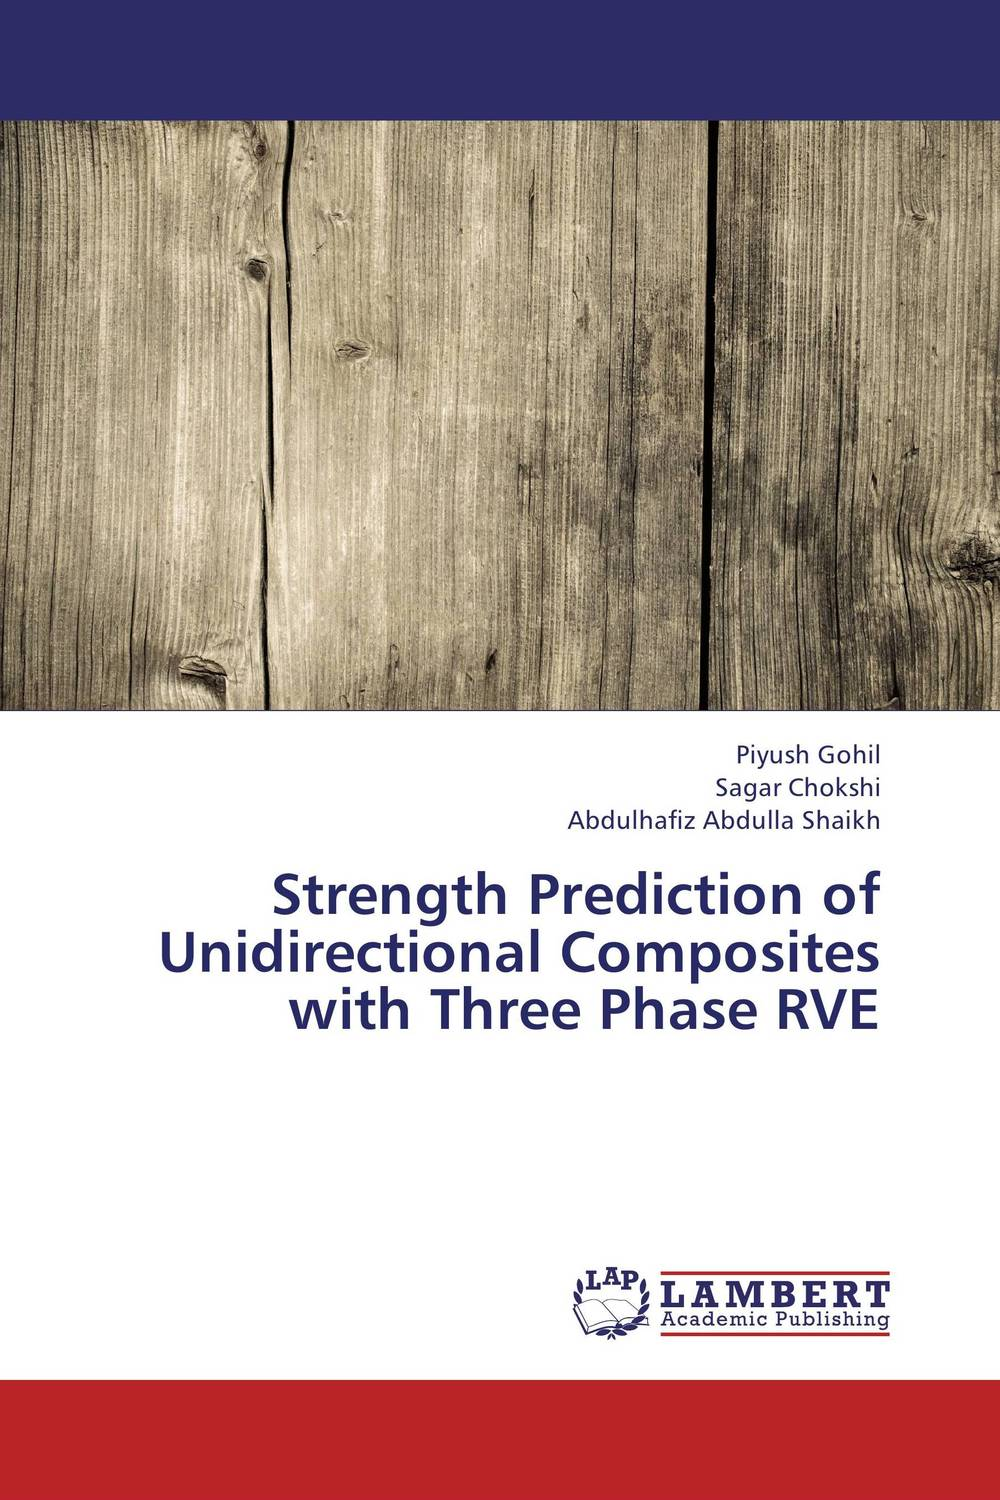 Strength Prediction of Unidirectional Composites with Three Phase RVE buckling of composites